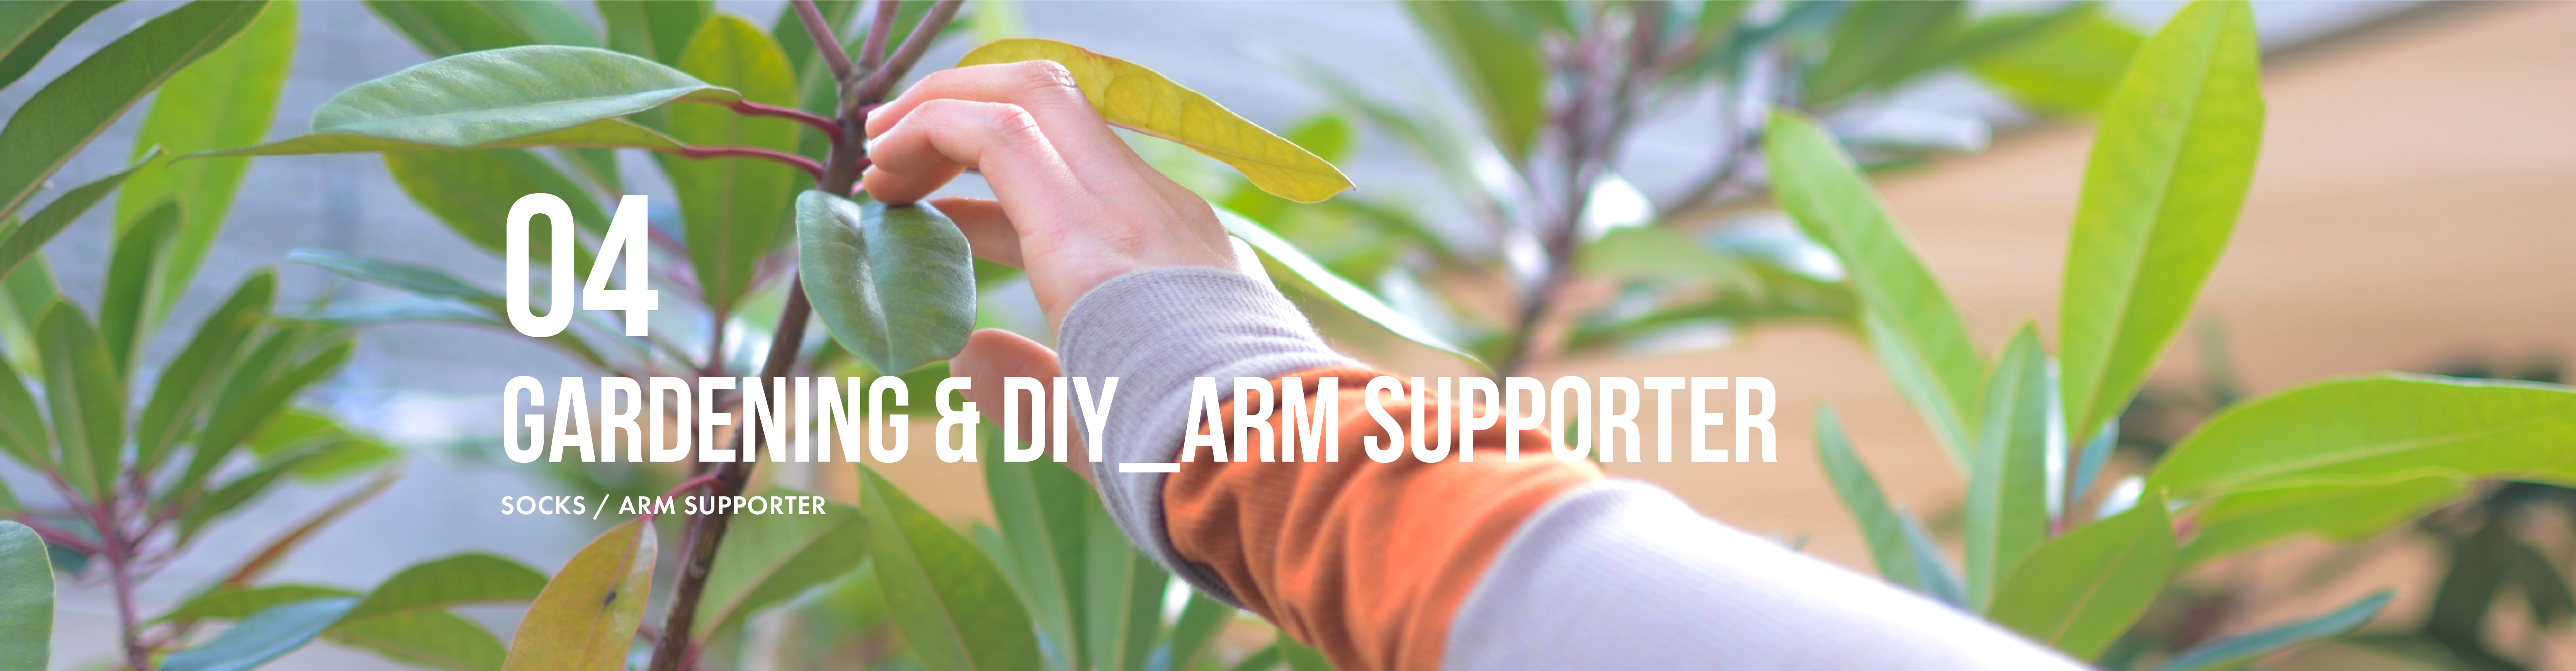 ARM SUPPORTER